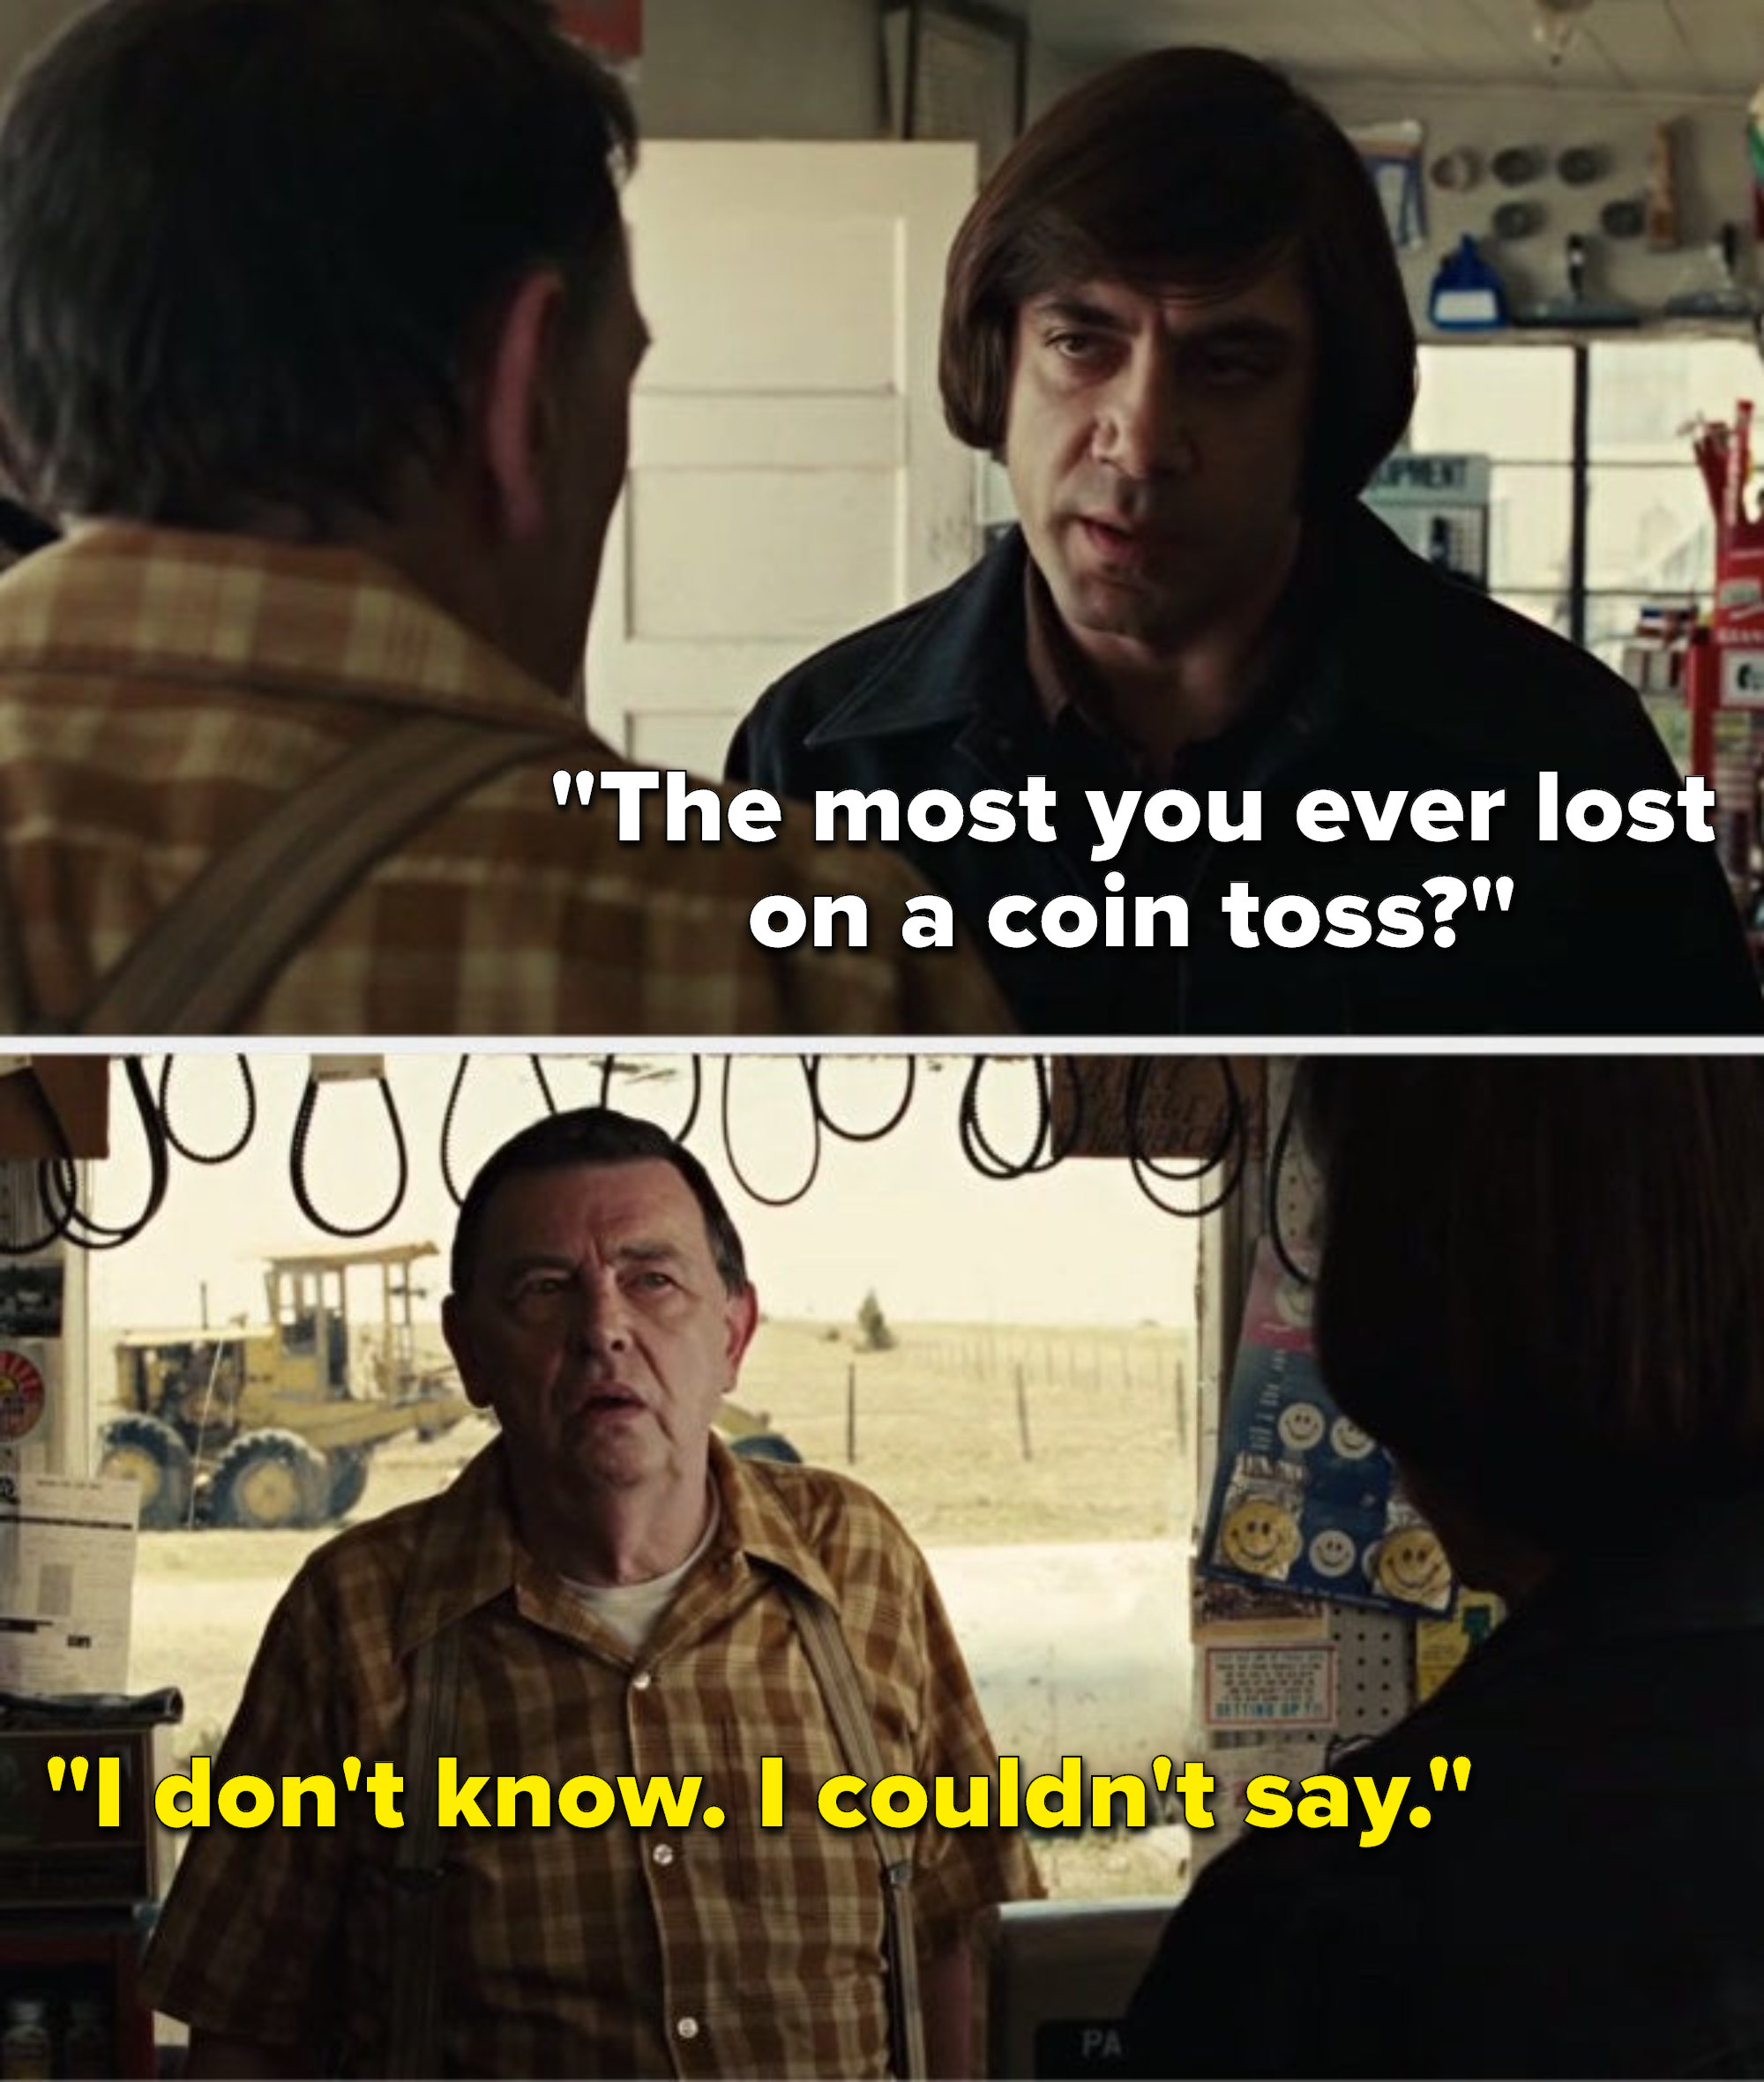 """Anton Chigurh asks, """"The most you ever lost on a coin toss?"""" and the store clerk says, """"I don't know; I couldn't say"""""""